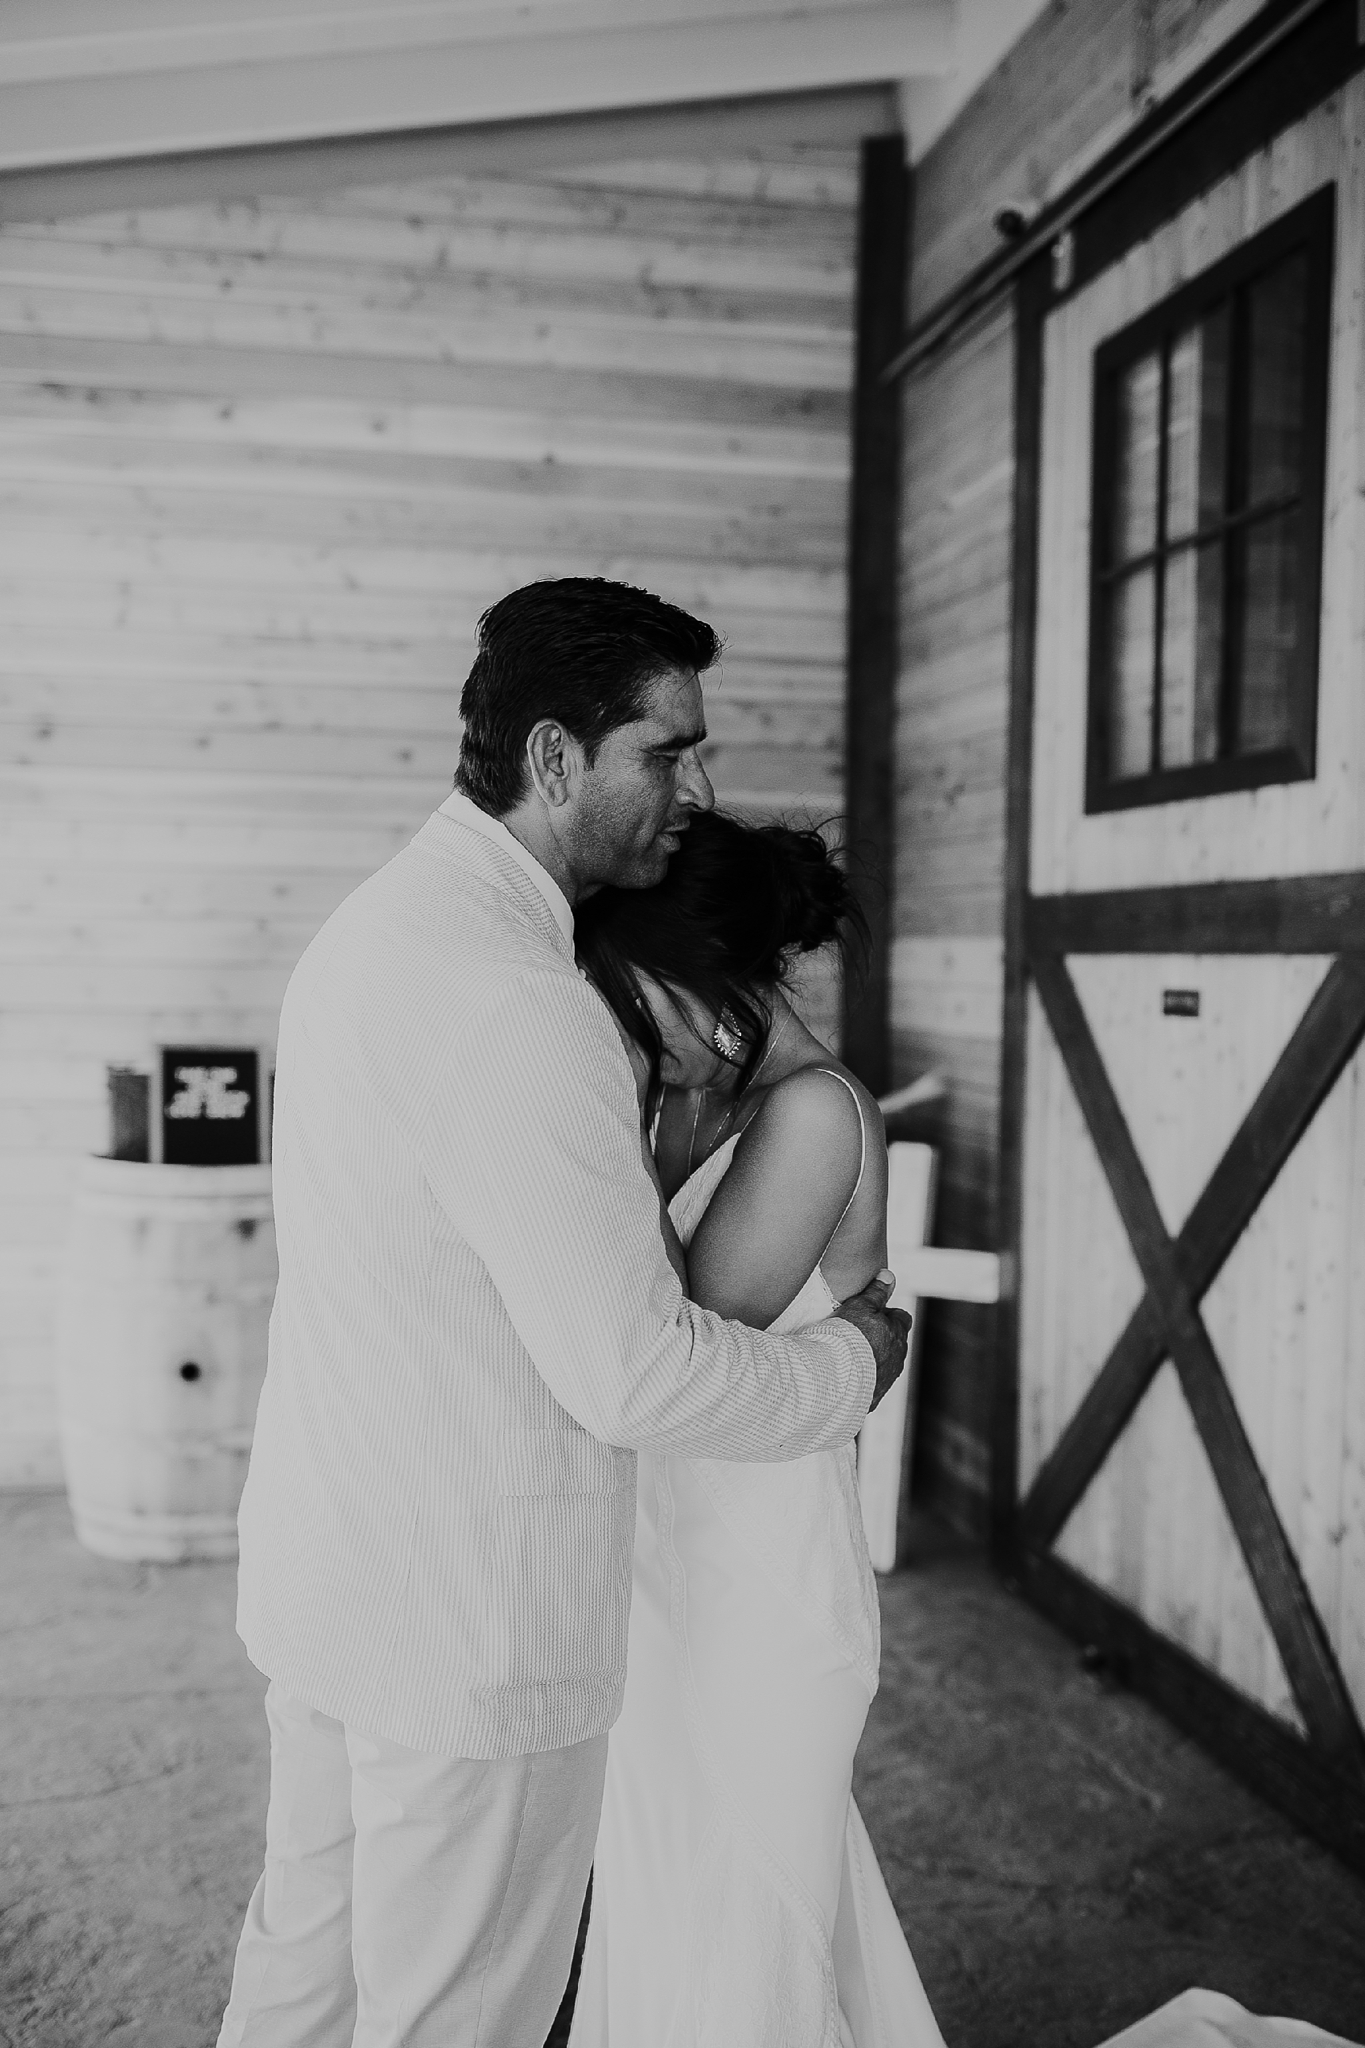 Alicia+lucia+photography+-+albuquerque+wedding+photographer+-+santa+fe+wedding+photography+-+new+mexico+wedding+photographer+-+new+mexico+wedding+-+new+mexico+wedding+-+barn+wedding+-+enchanted+vine+barn+wedding+-+ruidoso+wedding_0064.jpg